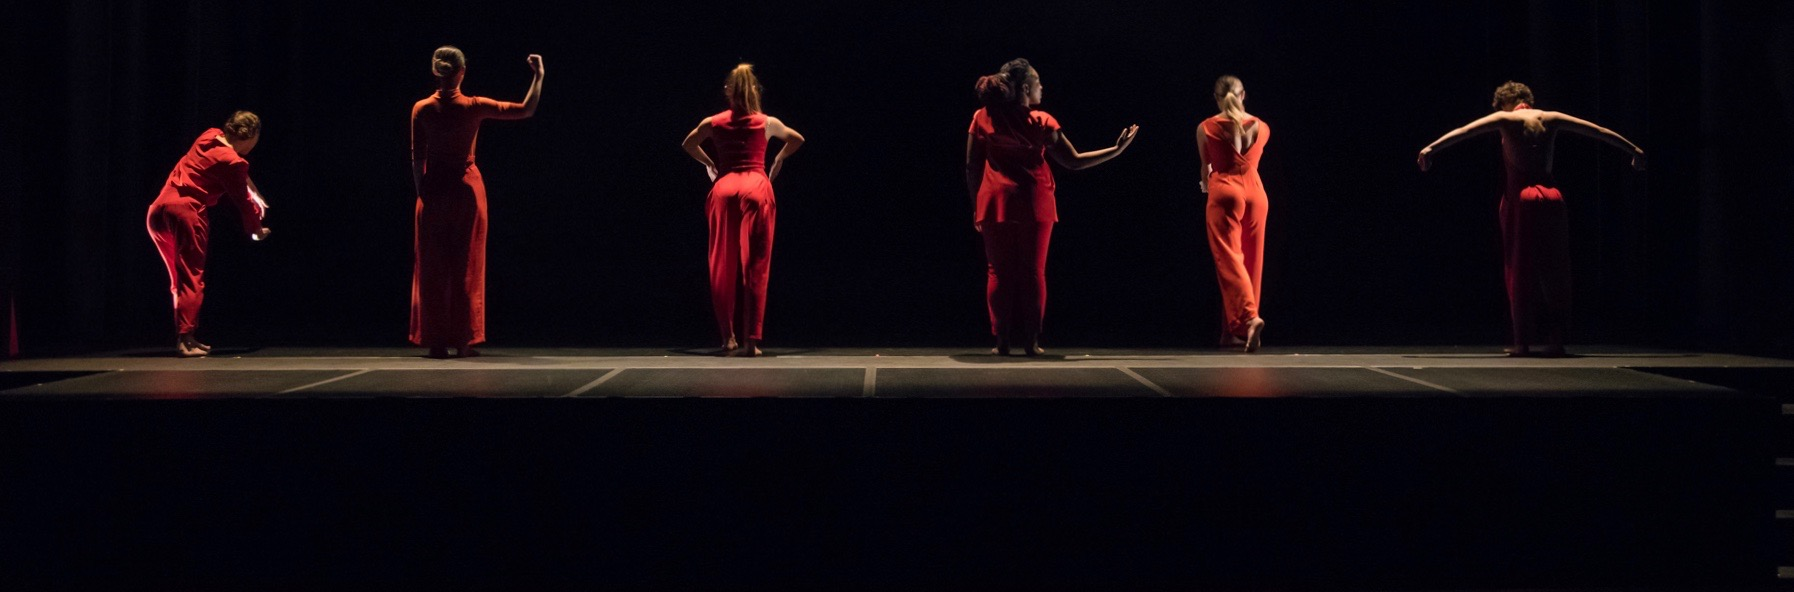 Dancers stand in a line, dressed in red, gesturing towards upstage